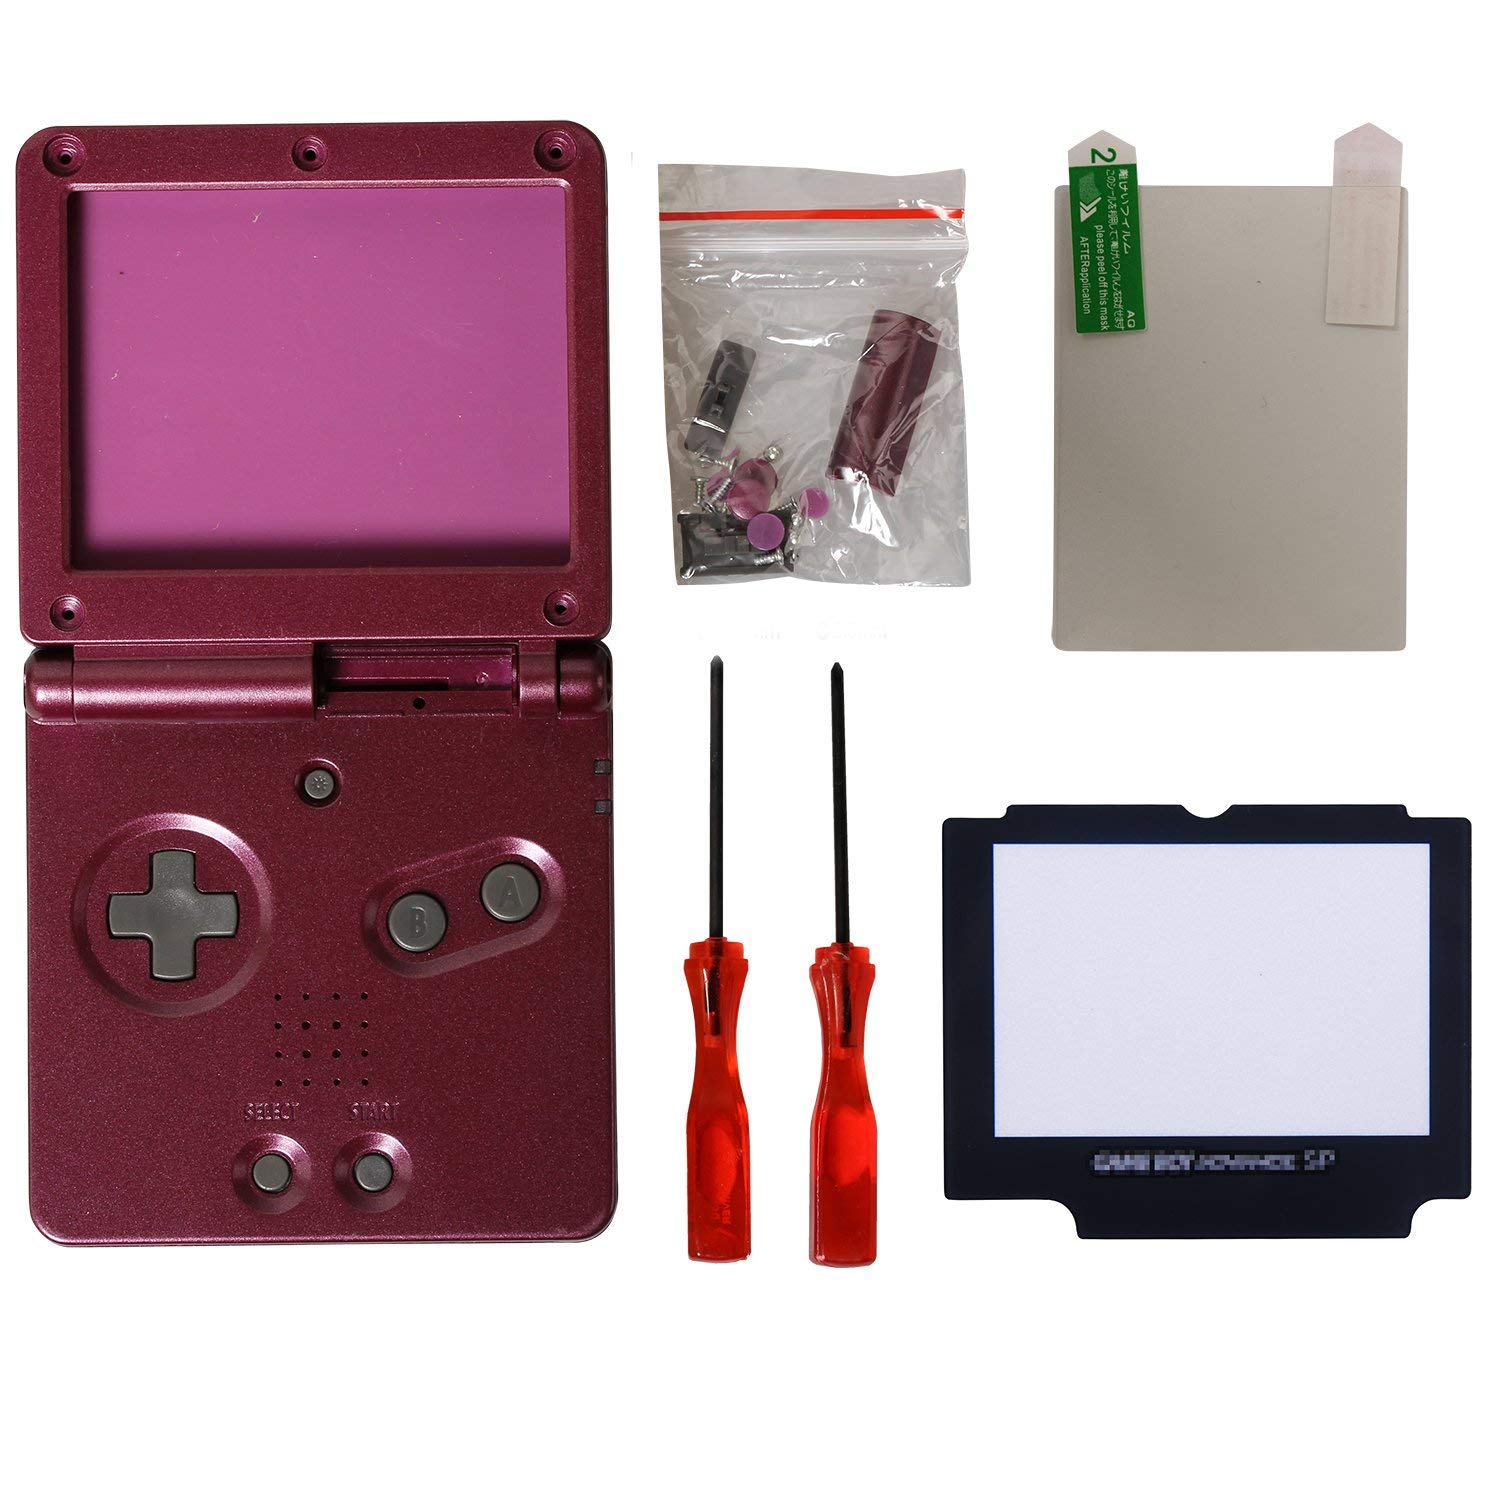 eJiasu Full Housing Shell Case Cover Pack Replacement Repair Parts for Gameboy Advance SP GBA SP (10PCS Multicolor GBA SP Shells)